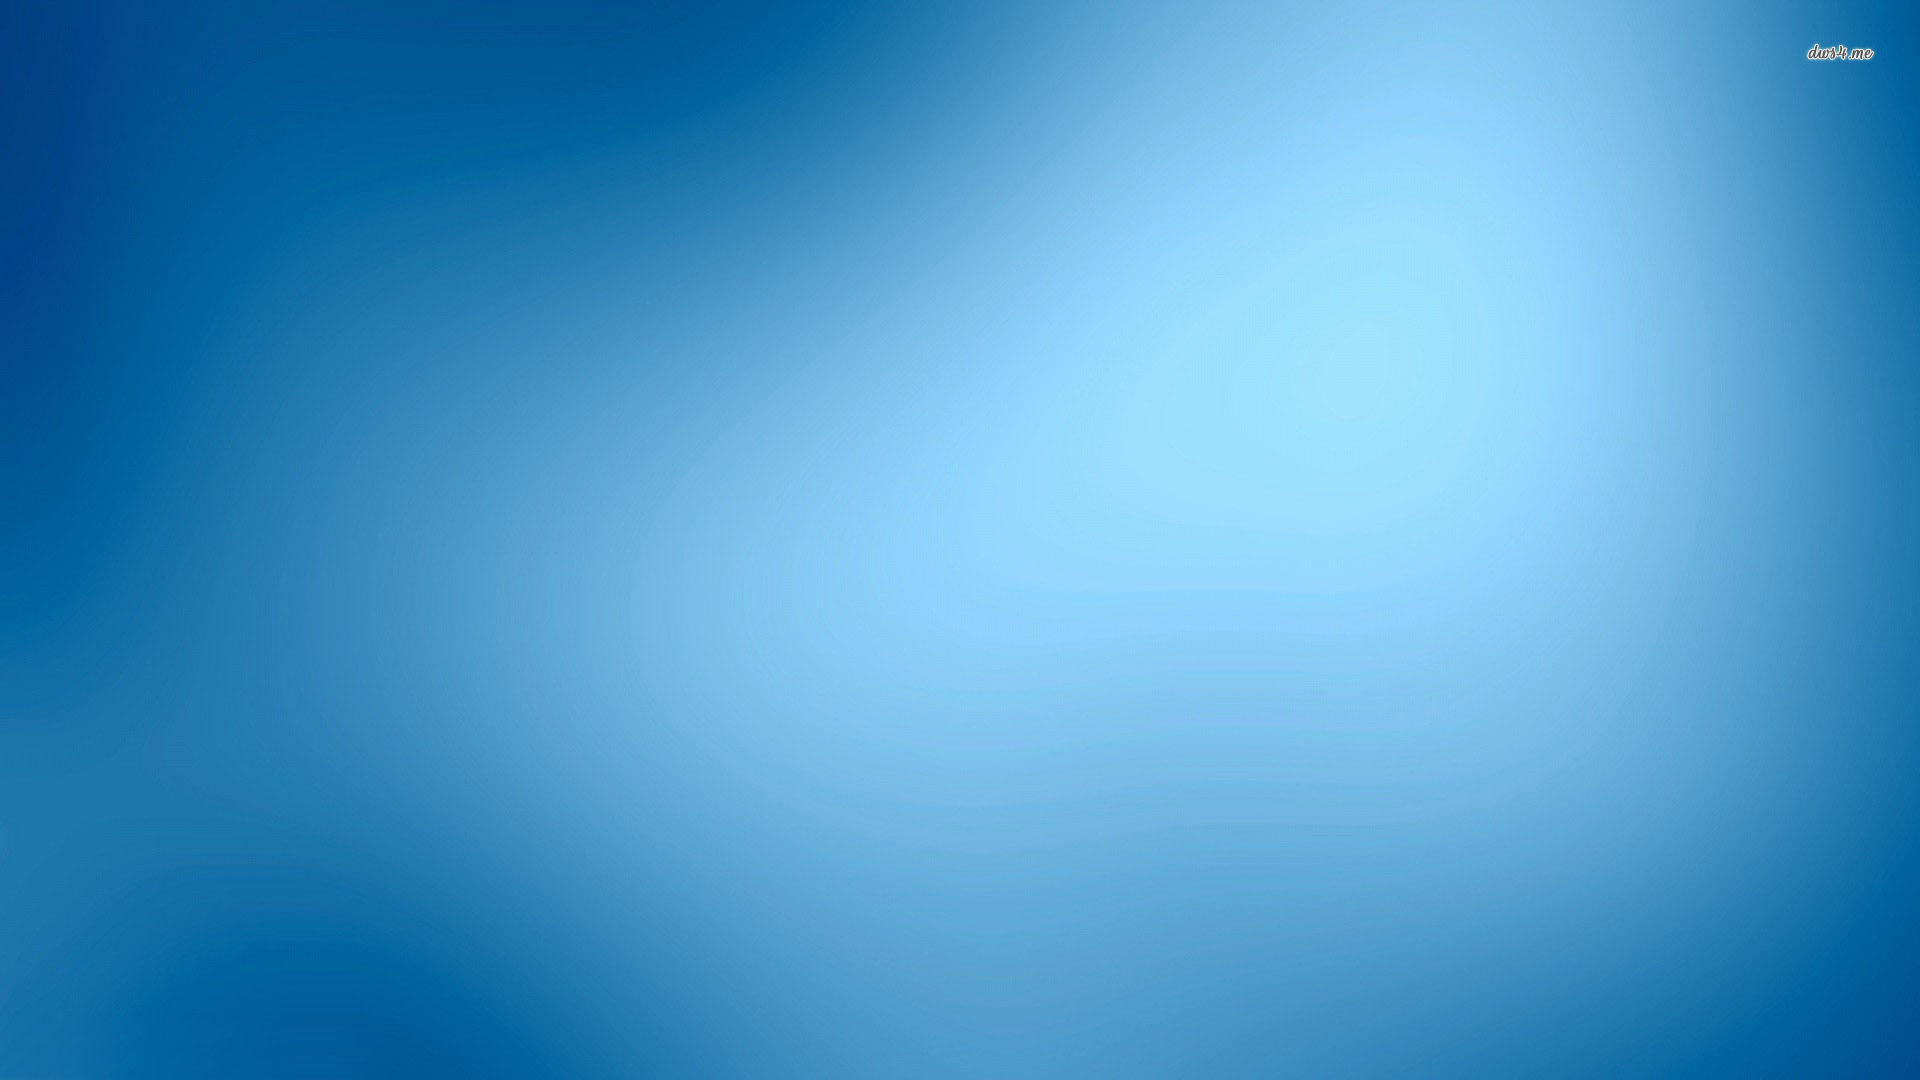 Blue Gradient Wallpaper 1920x1080